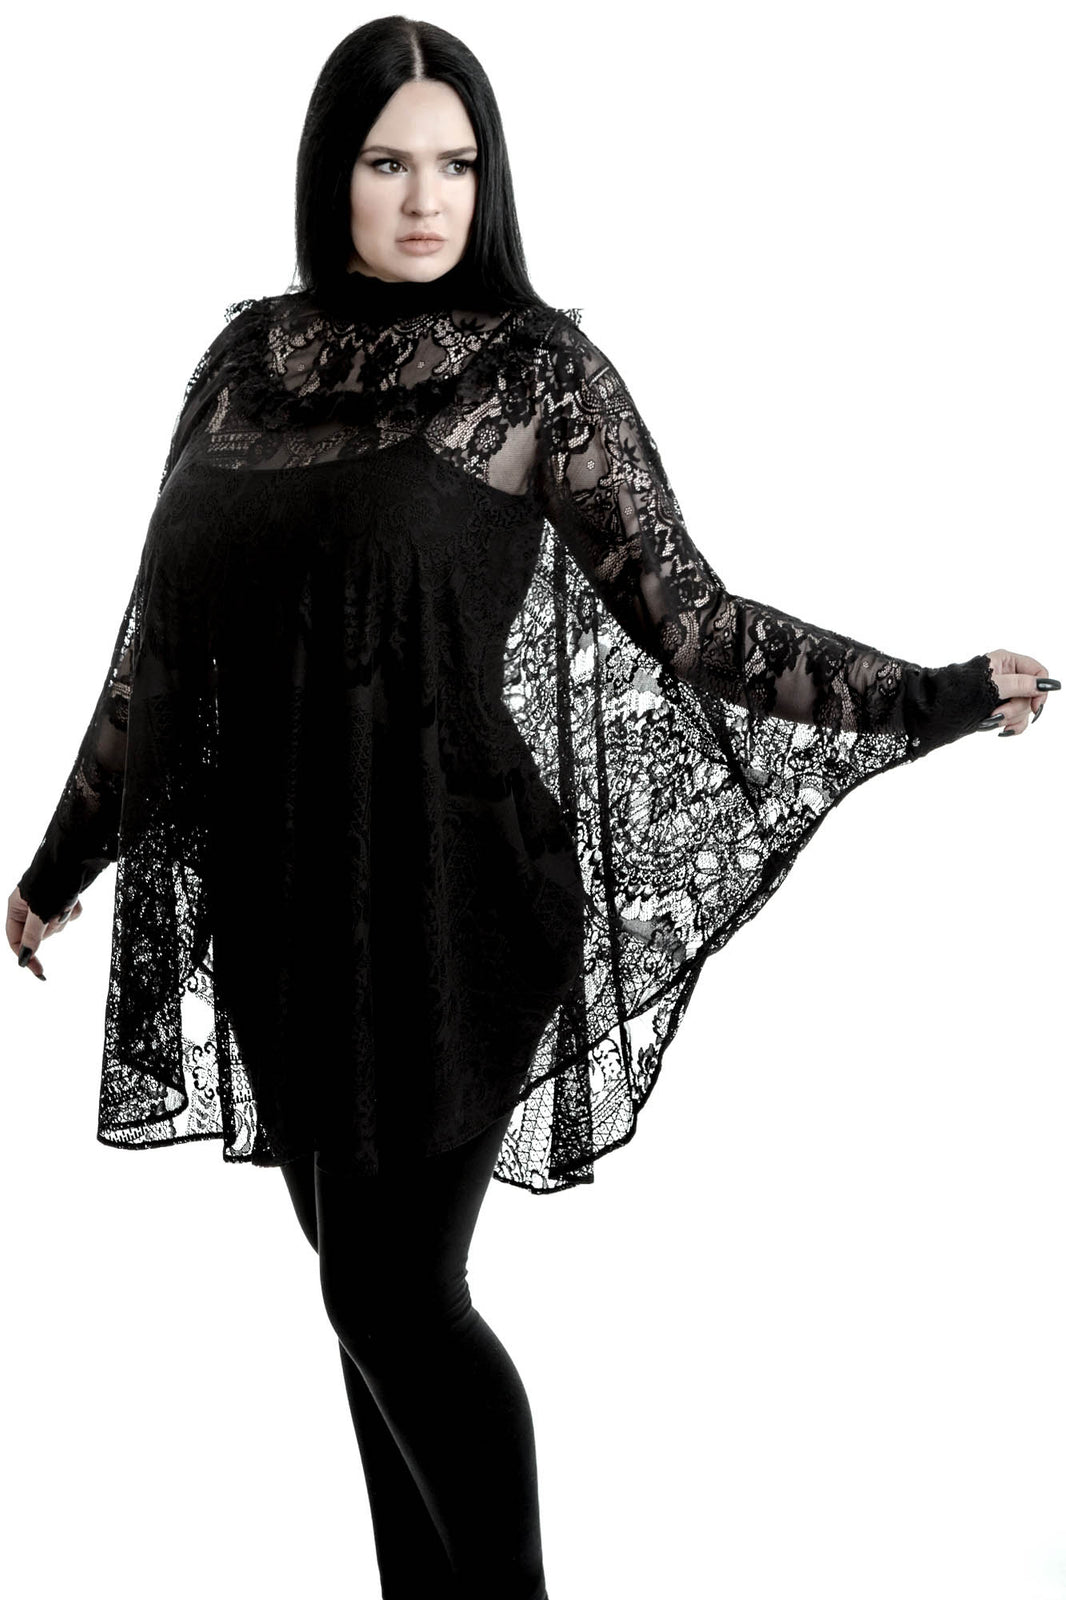 Morte Mistress Tunic [PLUS]